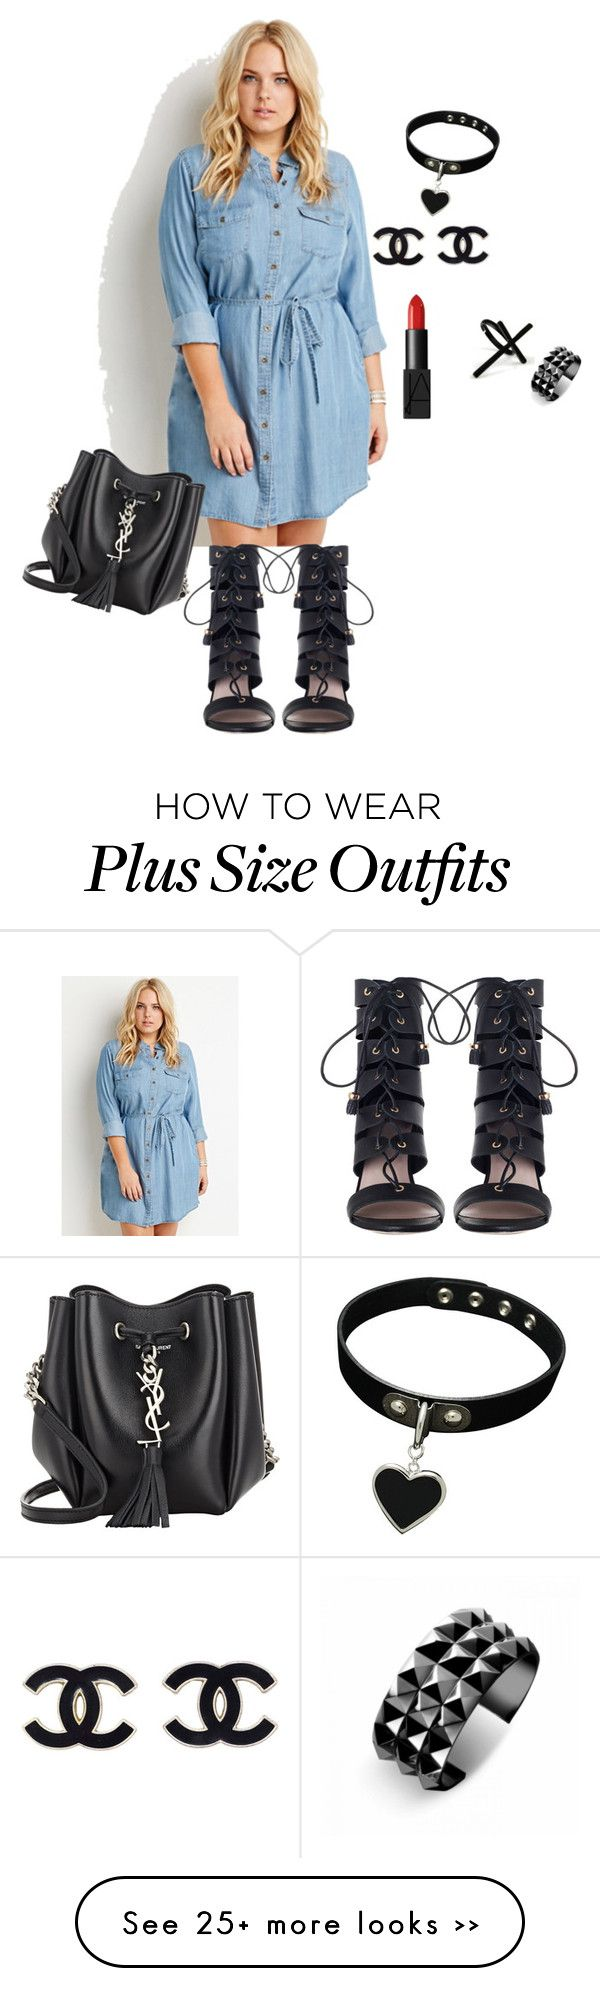 """plus size rough edges"" by kristie-payne on Polyvore featuring mode, Forever 21, Yves Saint Laurent, Zimmermann, NARS Cosmetics, Emi Jewellery et Waterford"